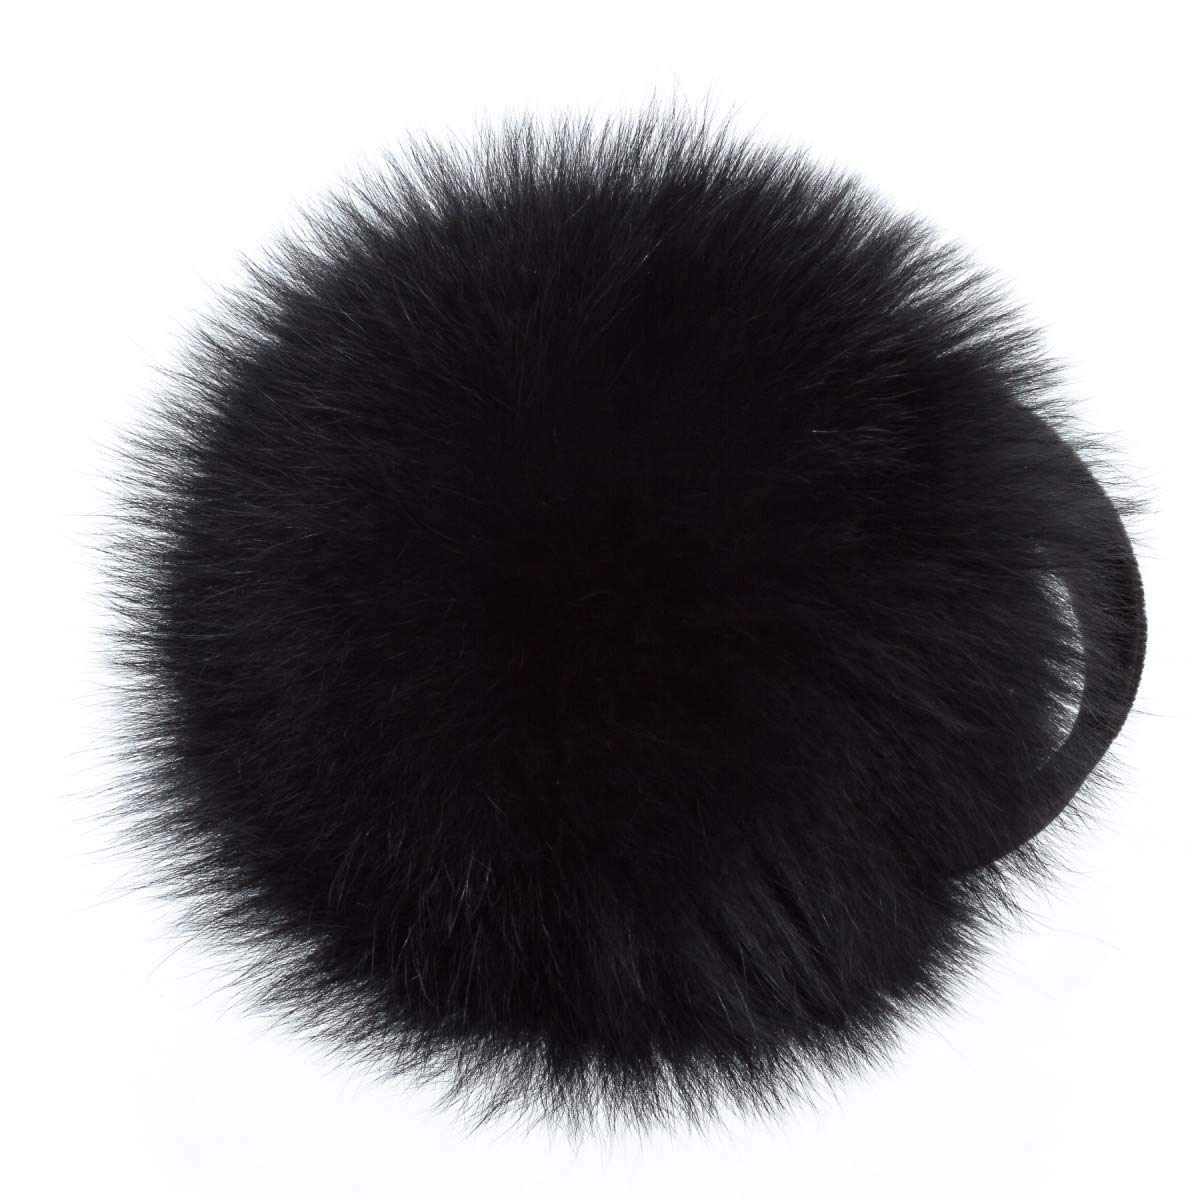 Surell Fox Fur Earmuff with Velvet Band - Winter Ear Muffs - Cold Weather Head Warmer (Black) by surell